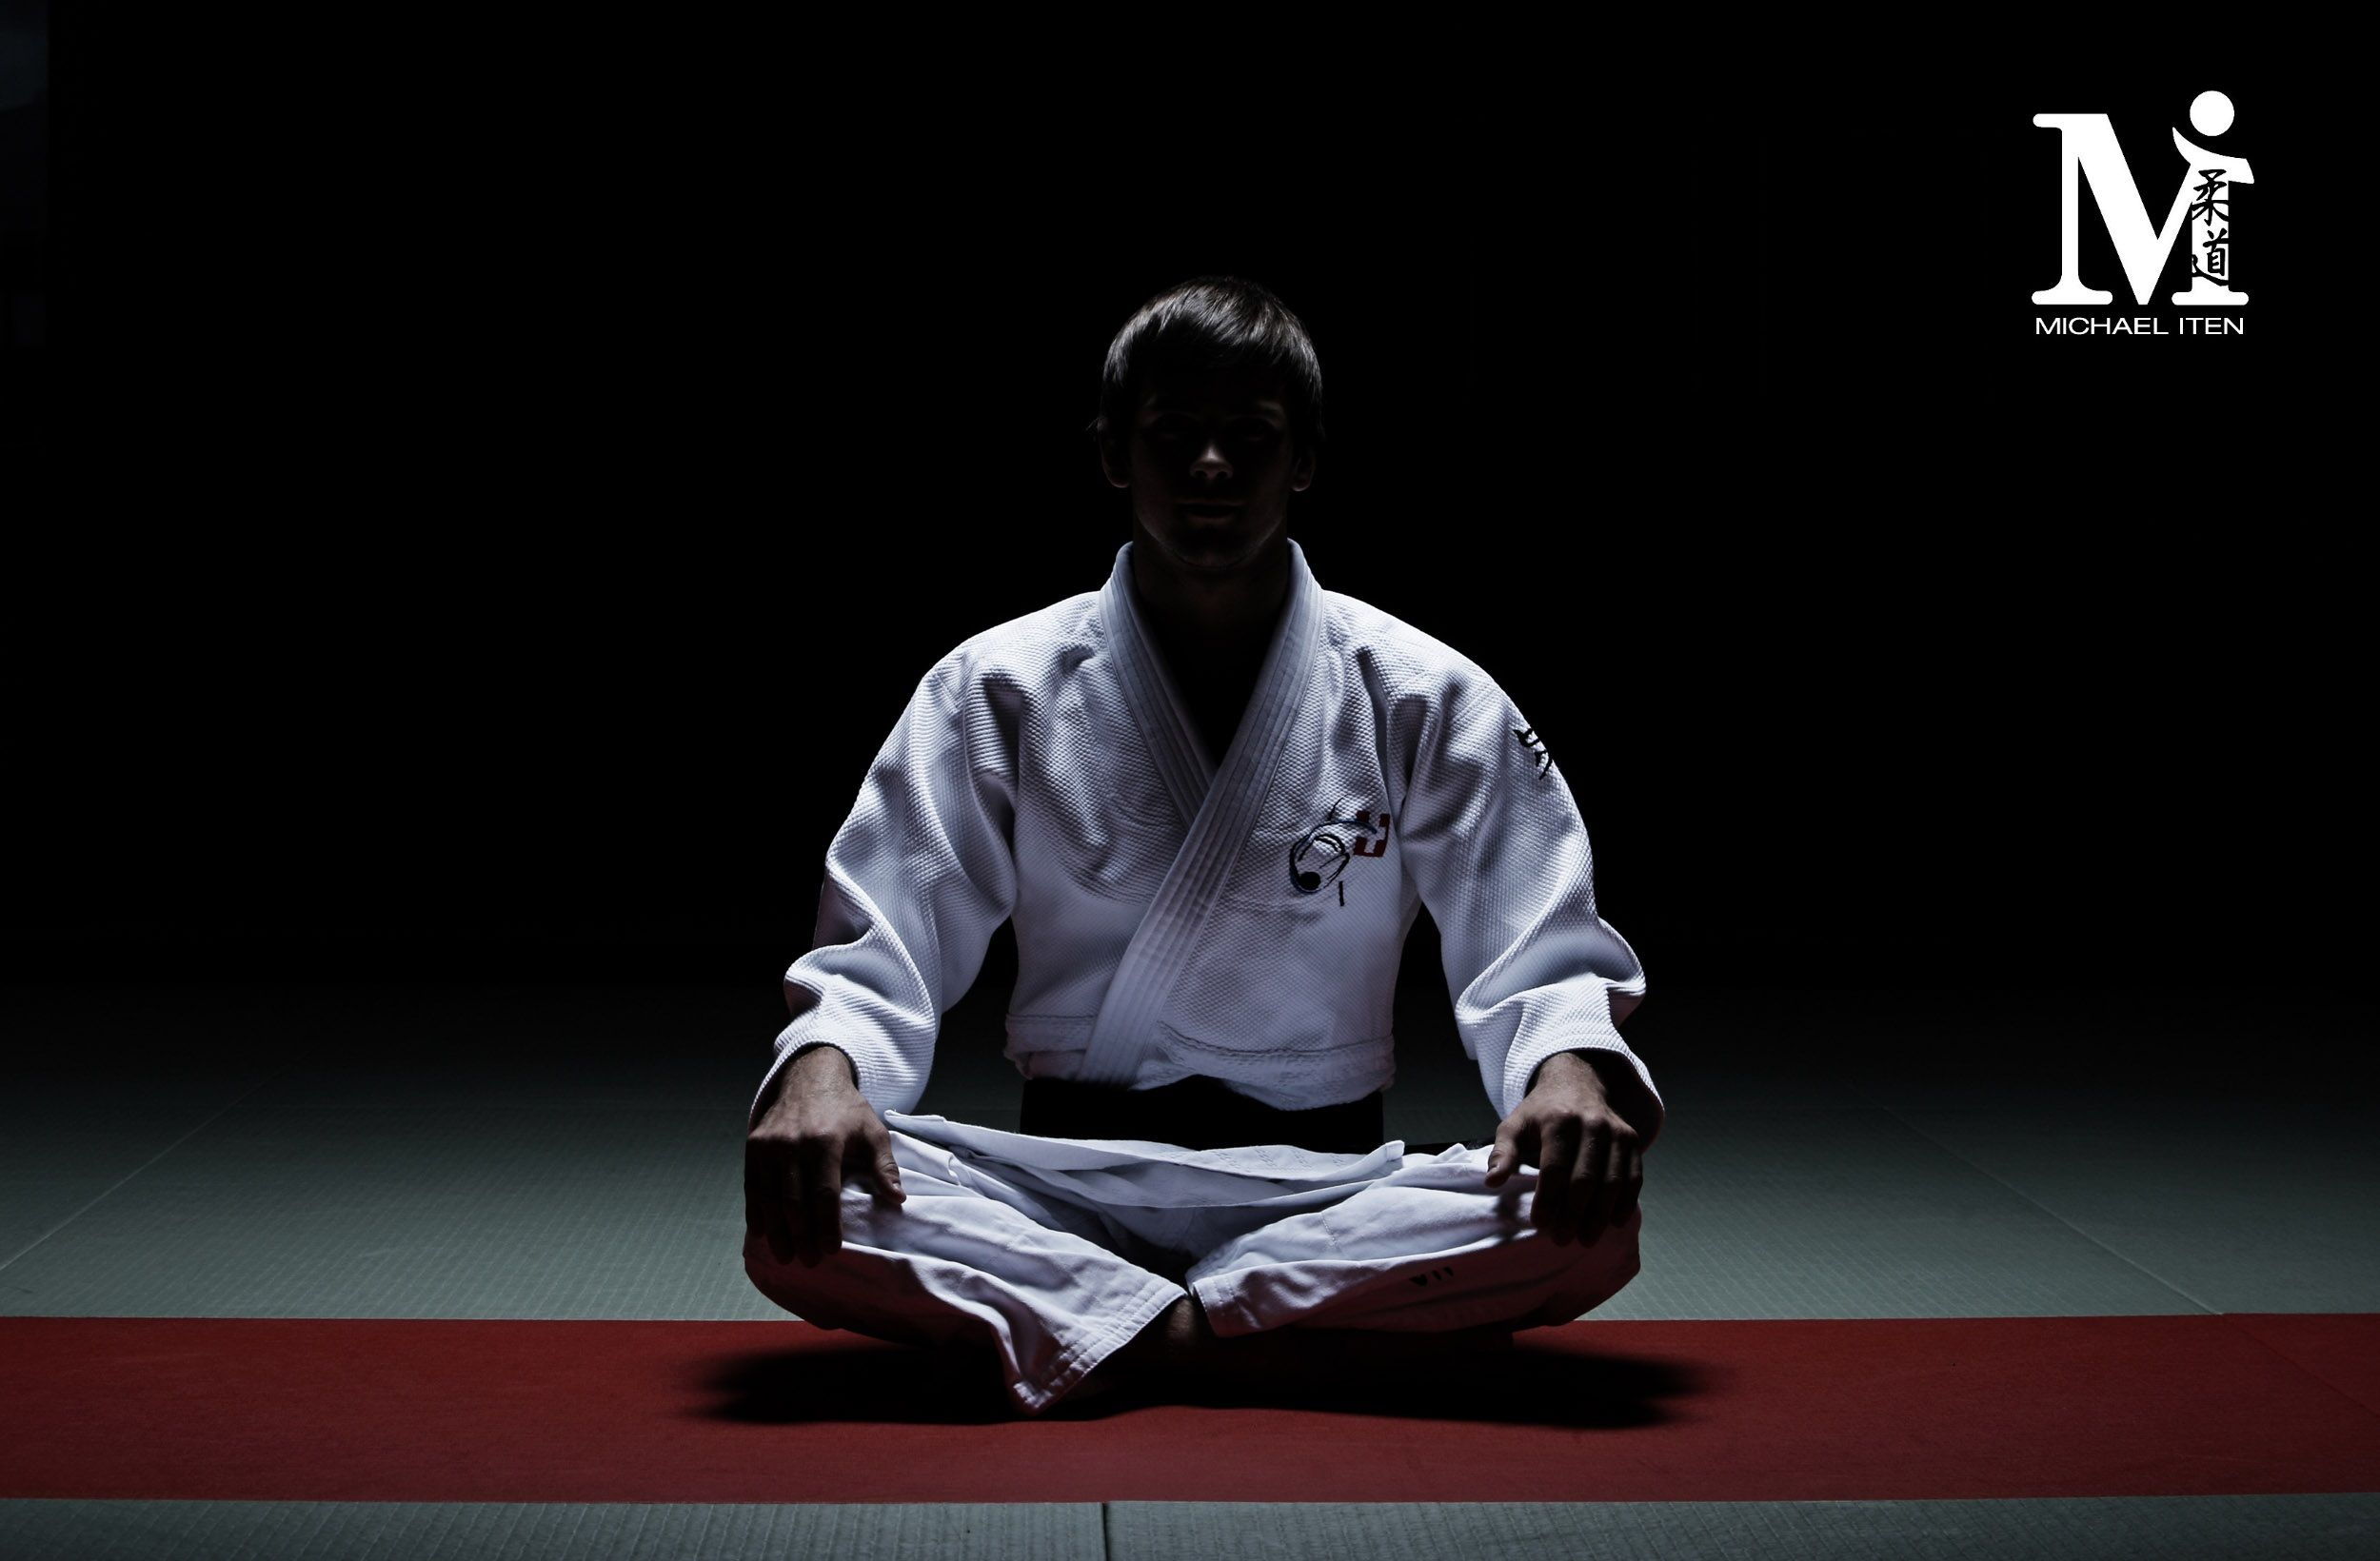 Judo Wallpapers, 2500x1640 px | Wallpapers PC Gallery - REuuN.com